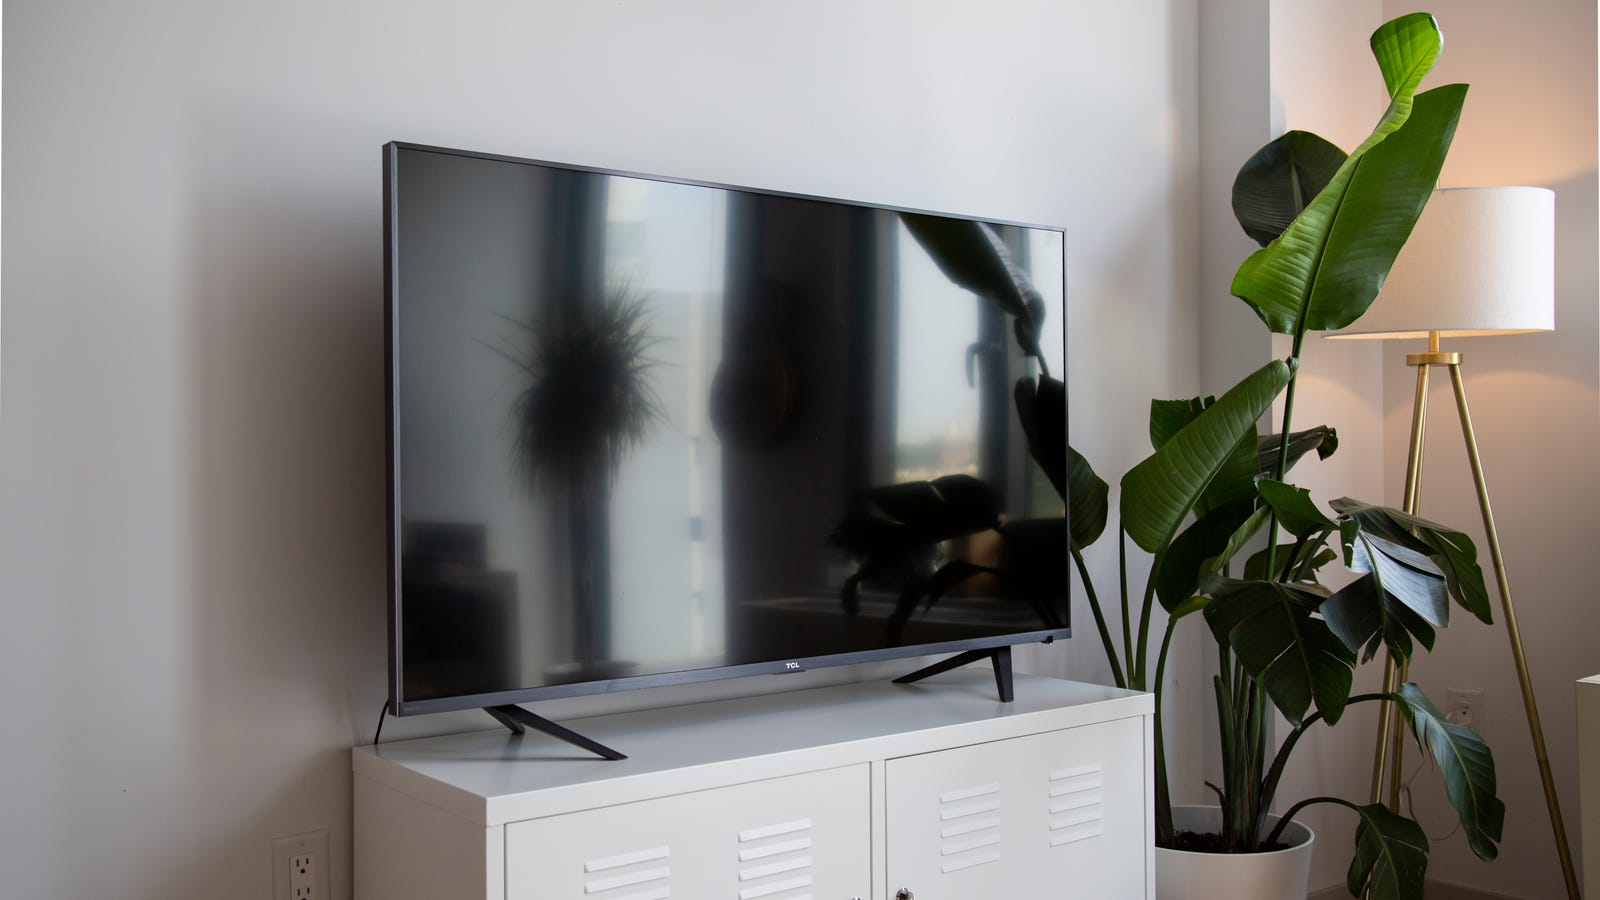 Nice-looking television set, funny legs due to improvised set up